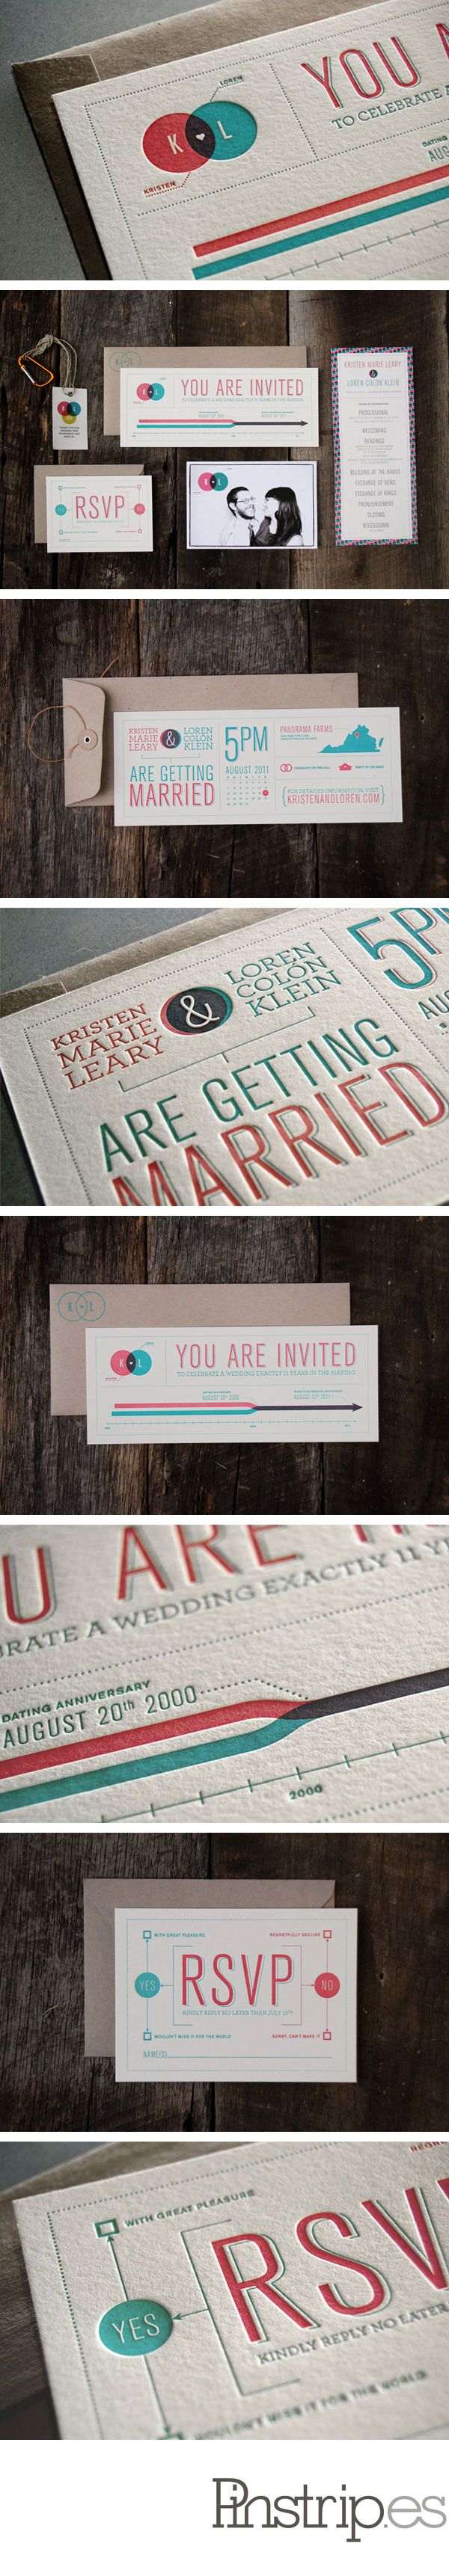 Michaels crafts wedding invitations - Wedding Invitations Michaels Craft Store Another Awesome Letter Pressed Wedding Invite Download